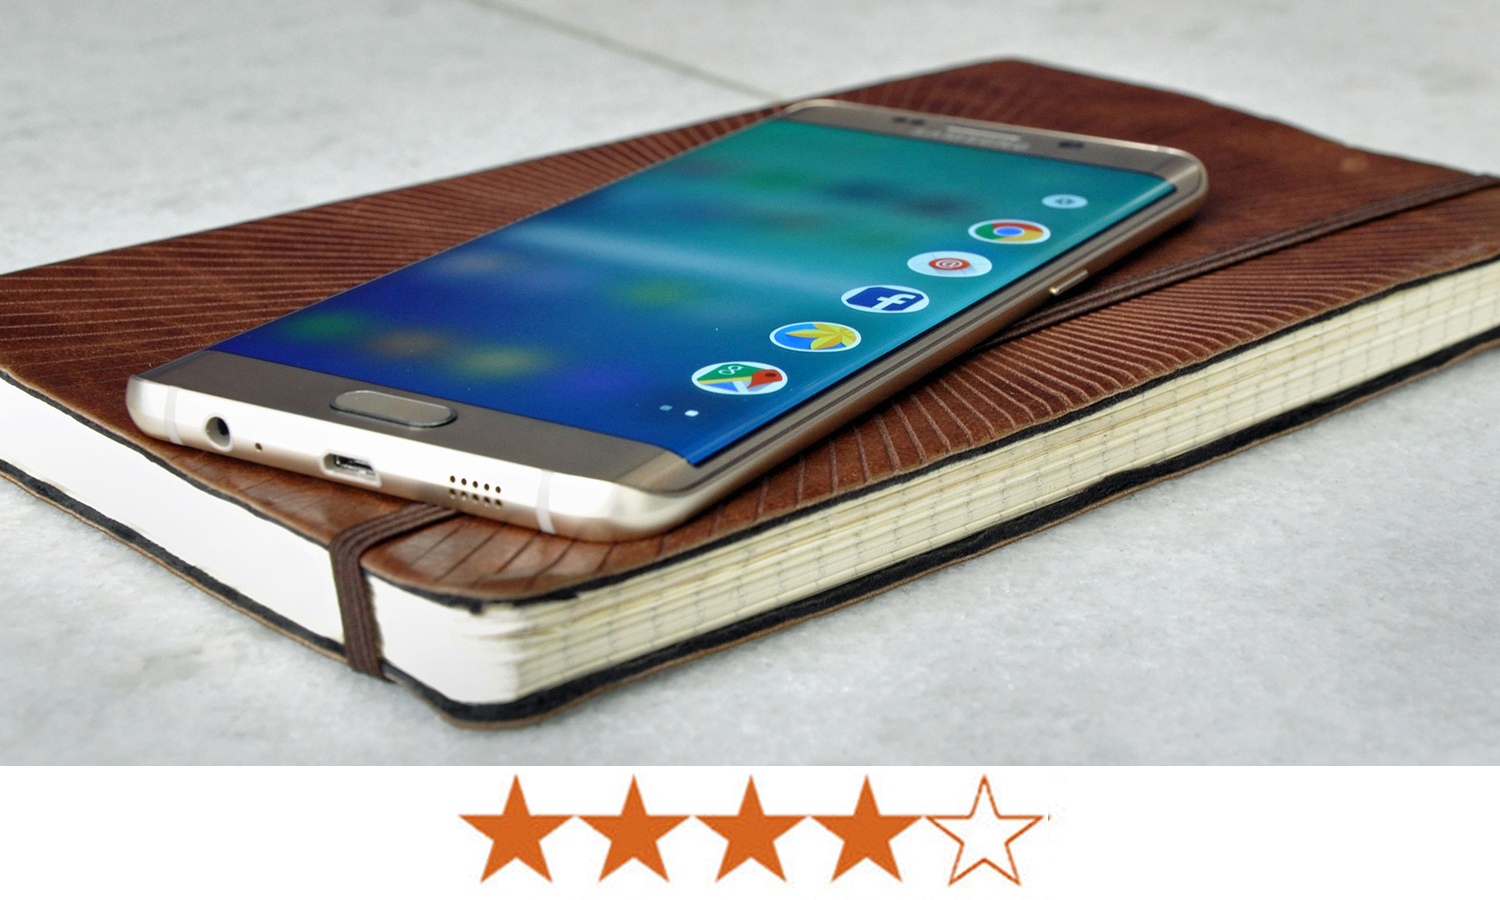 Samsung Galaxy S6 Edge Plus Review: Is It Good for Business?